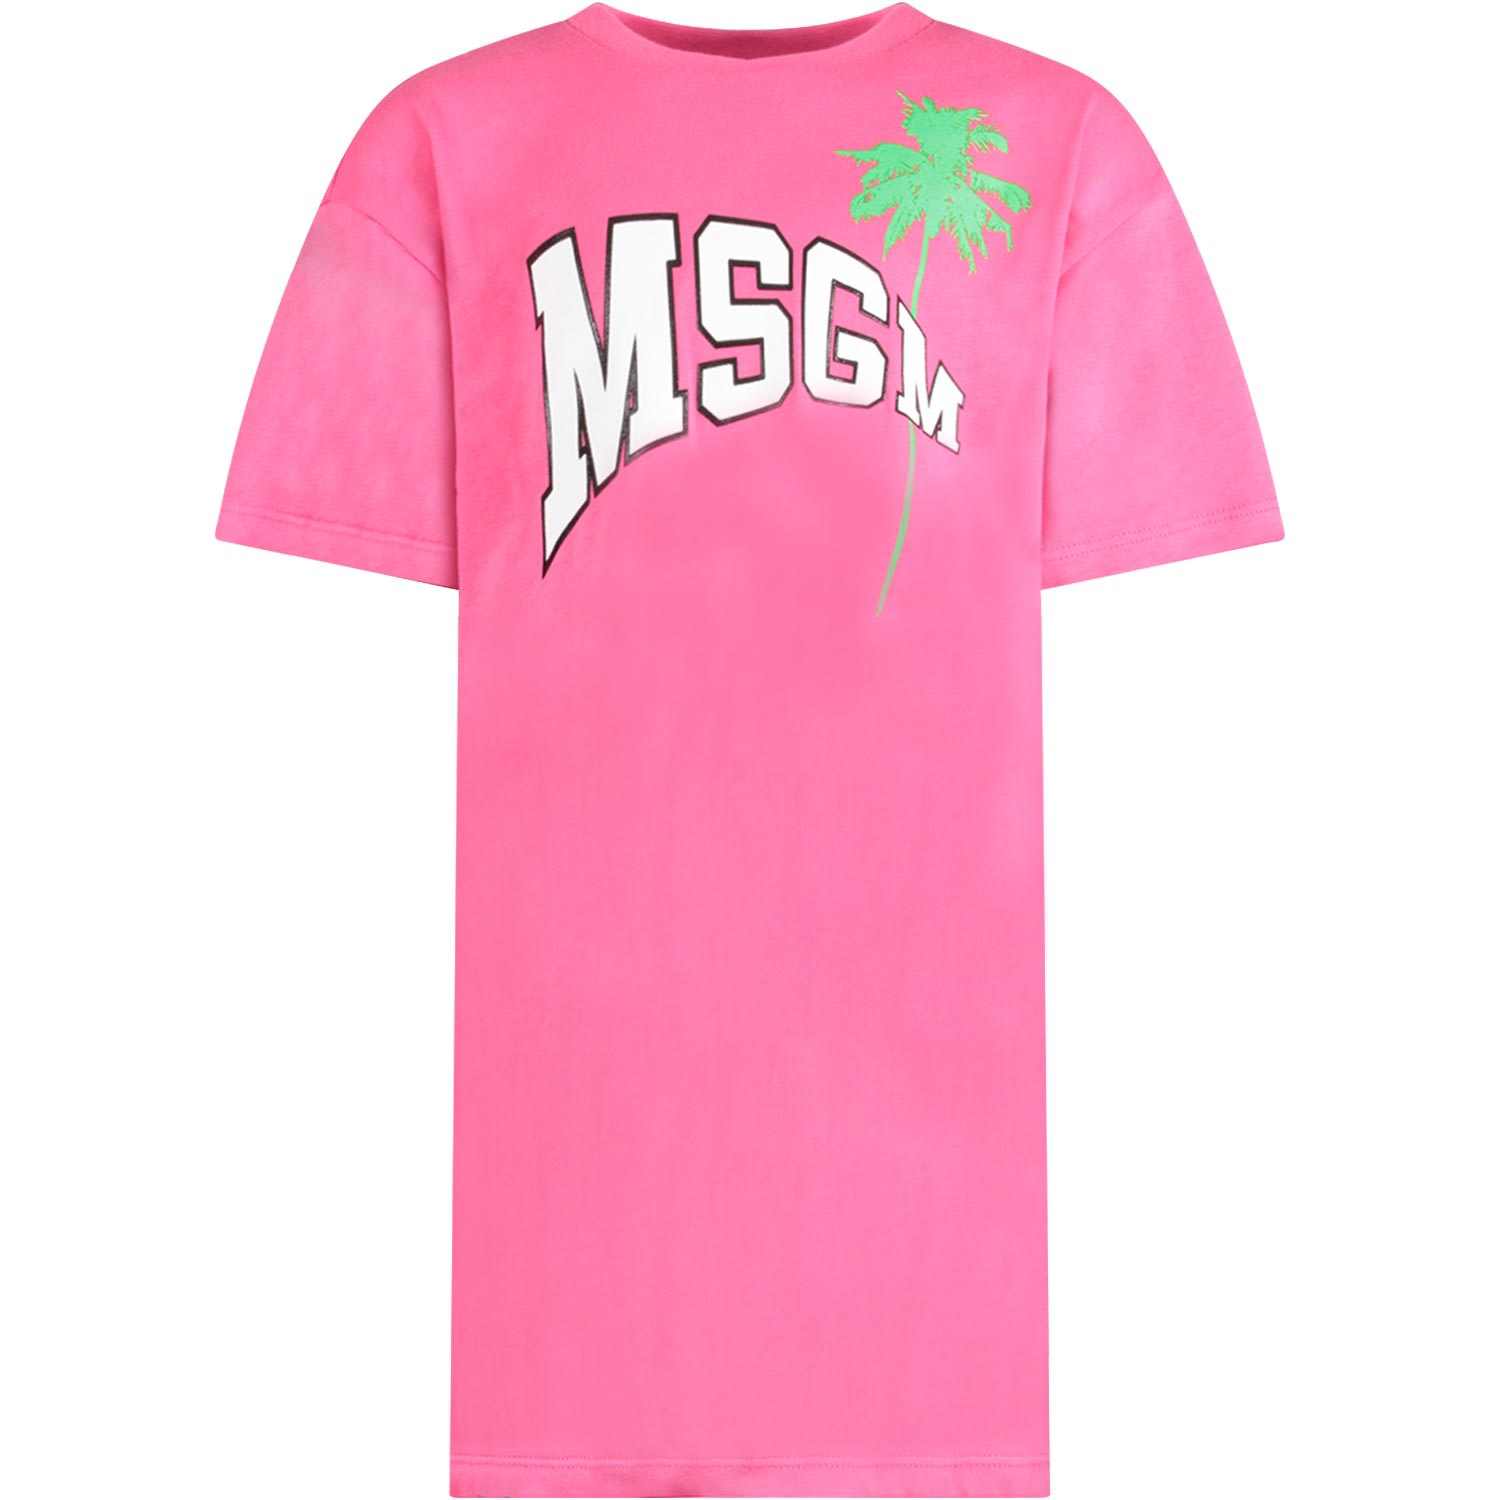 Buy MSGM Fuchsia Dress With Logo And Palm For Girl online, shop MSGM with free shipping